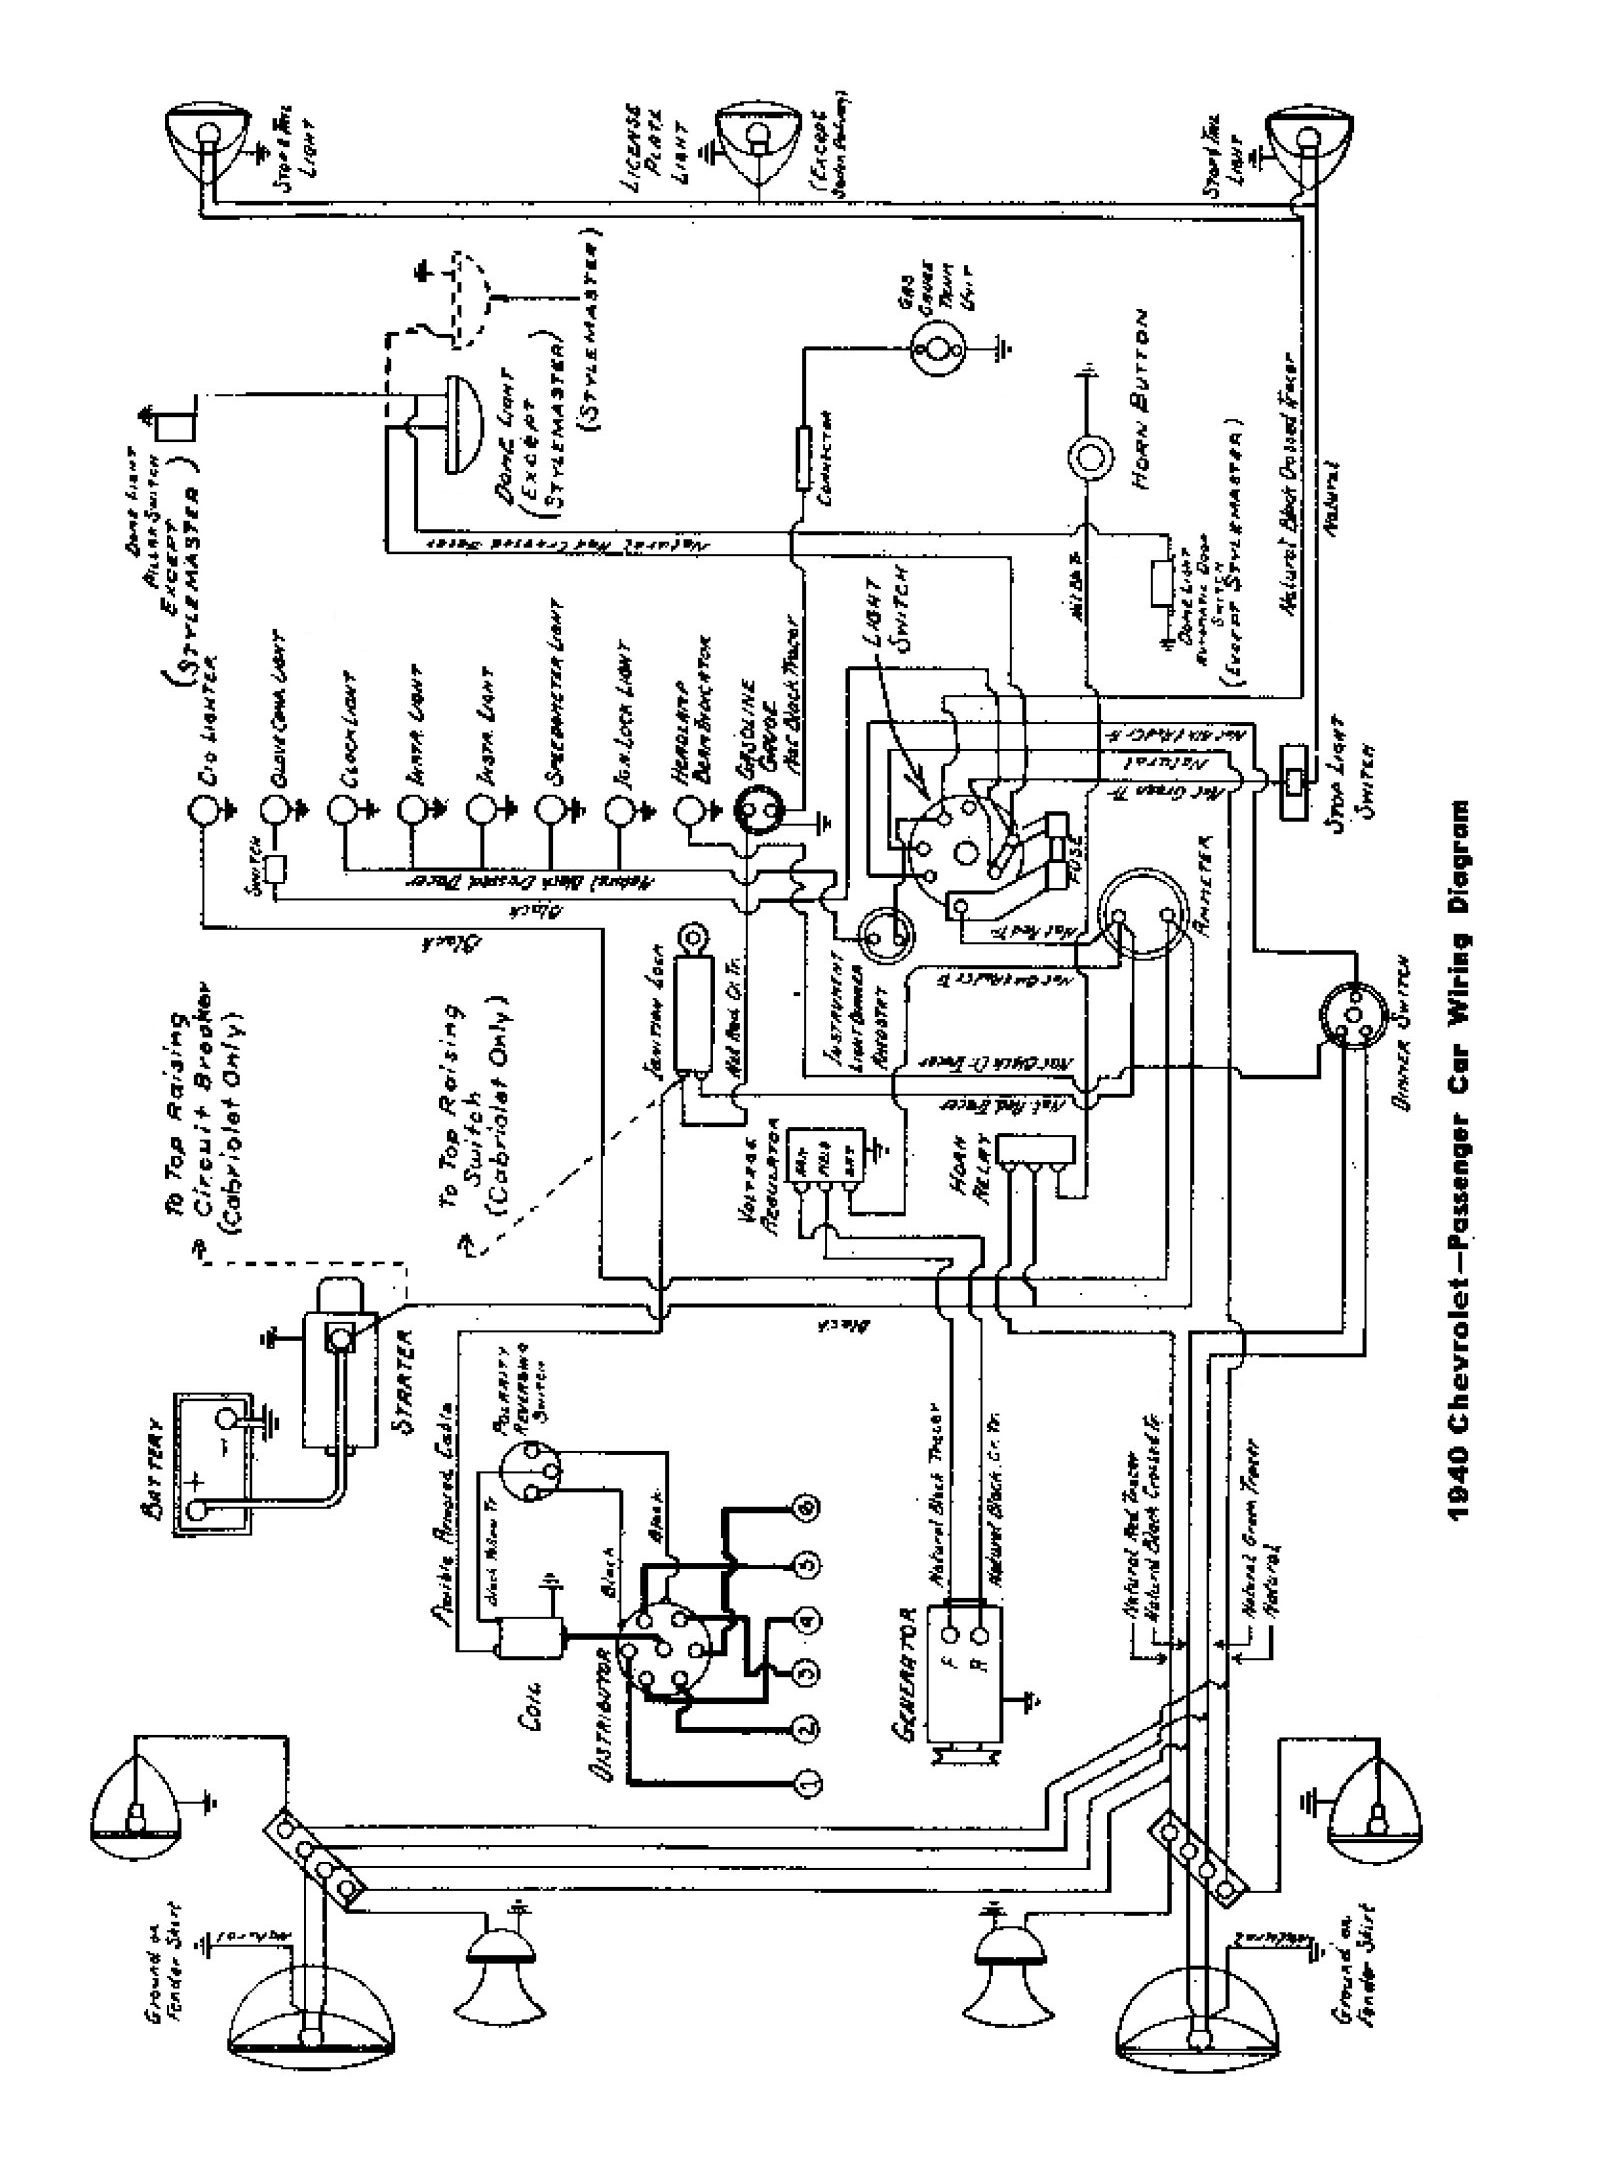 1940 chevrolet wiring diagram wiring database diagram 1940 chevy wiring diagram 1940 chevrolet wiring diagram #2